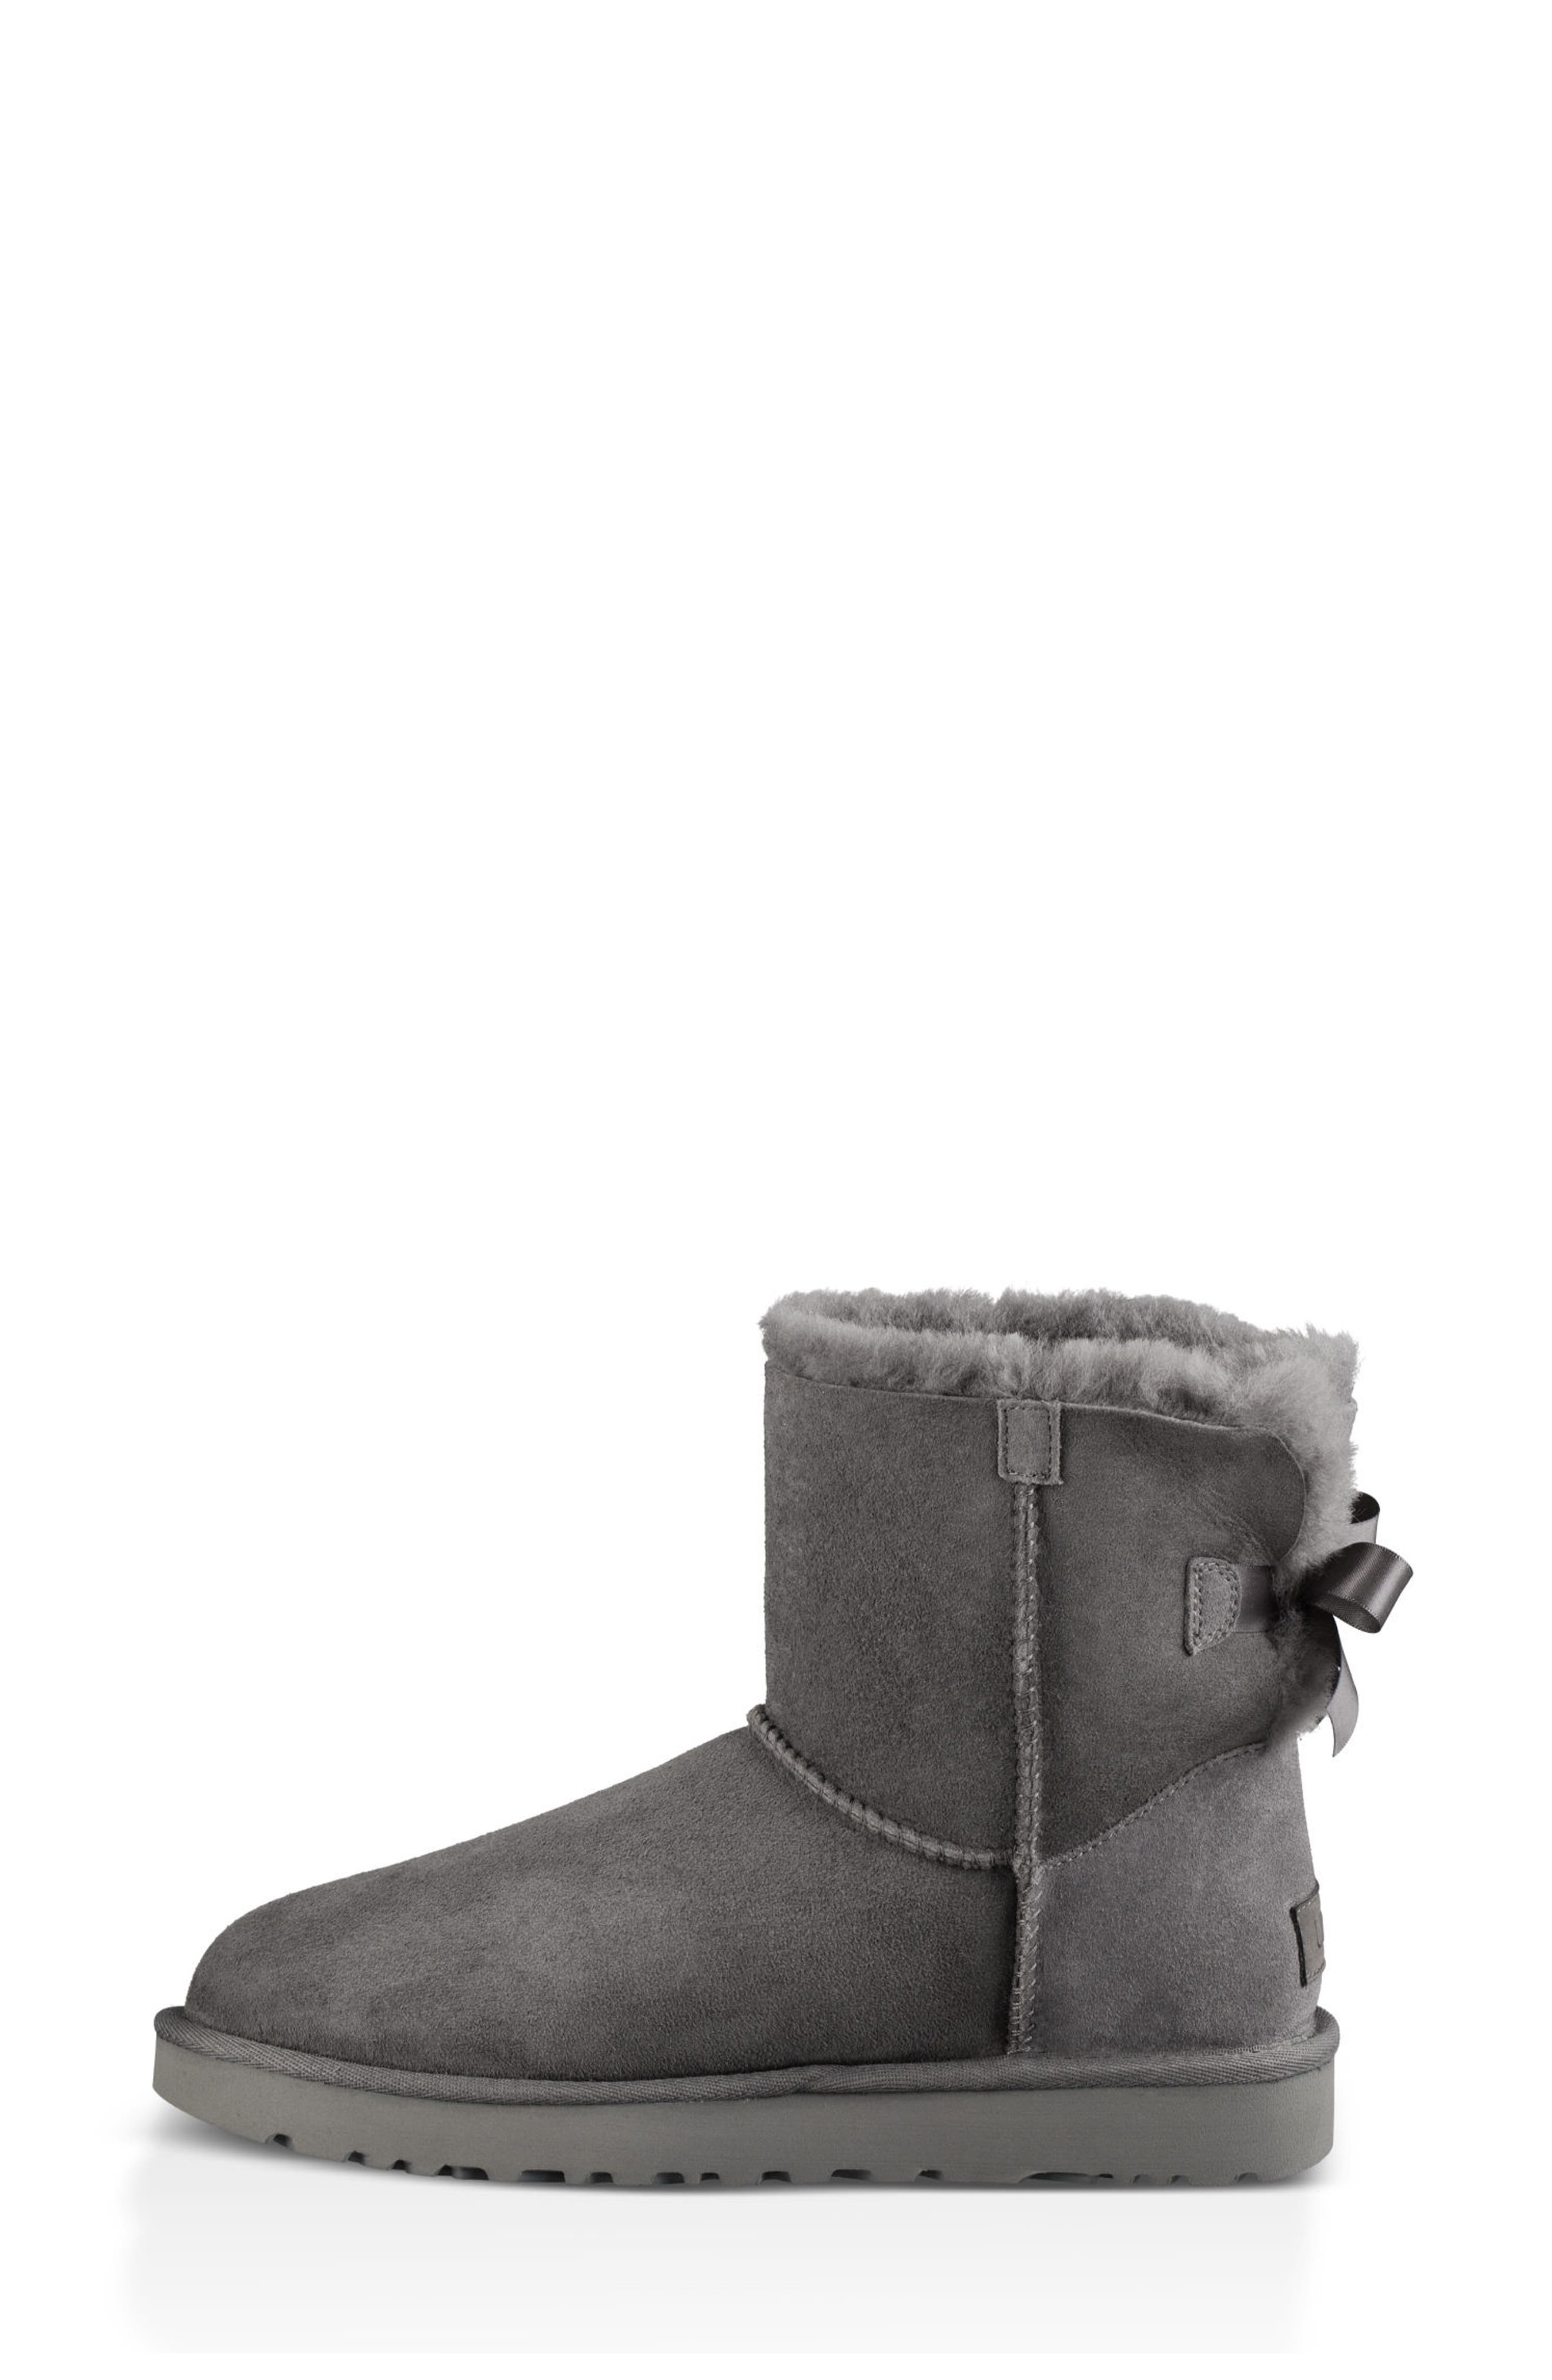 Mini Bailey Bow II Genuine Shearling Bootie,                             Alternate thumbnail 6, color,                             GREY SUEDE